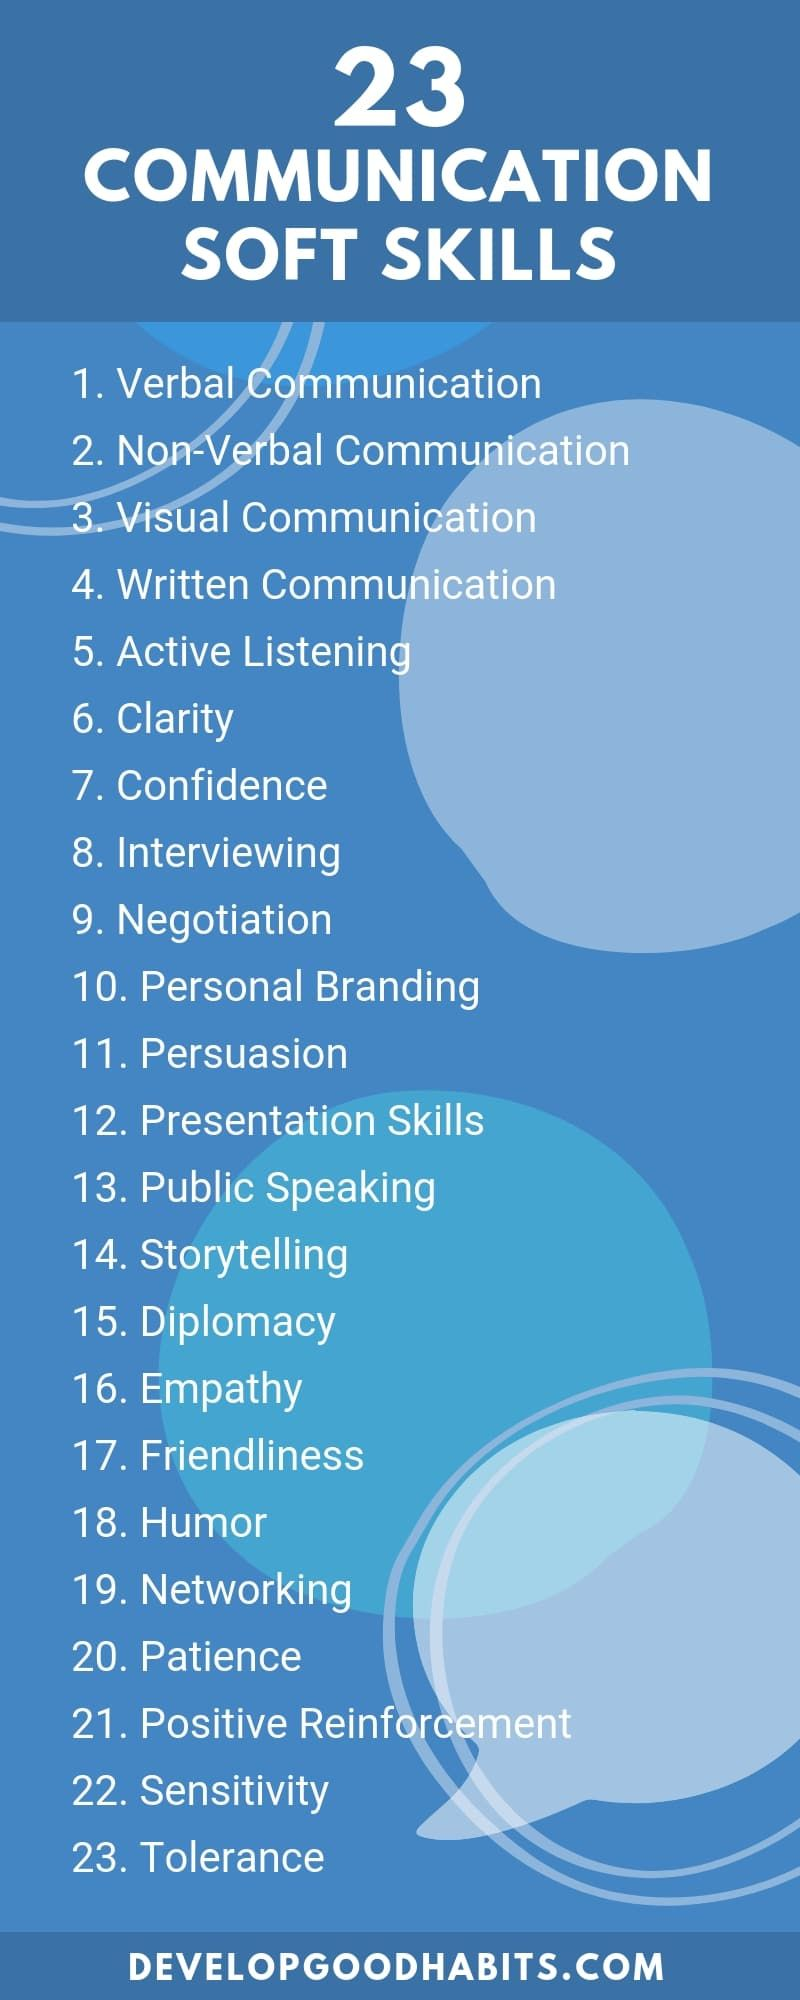 135 Soft Skills List To Stand Out On A Resume Or Job Application Effective Communication Skills Improve Communication Skills List Of Skills